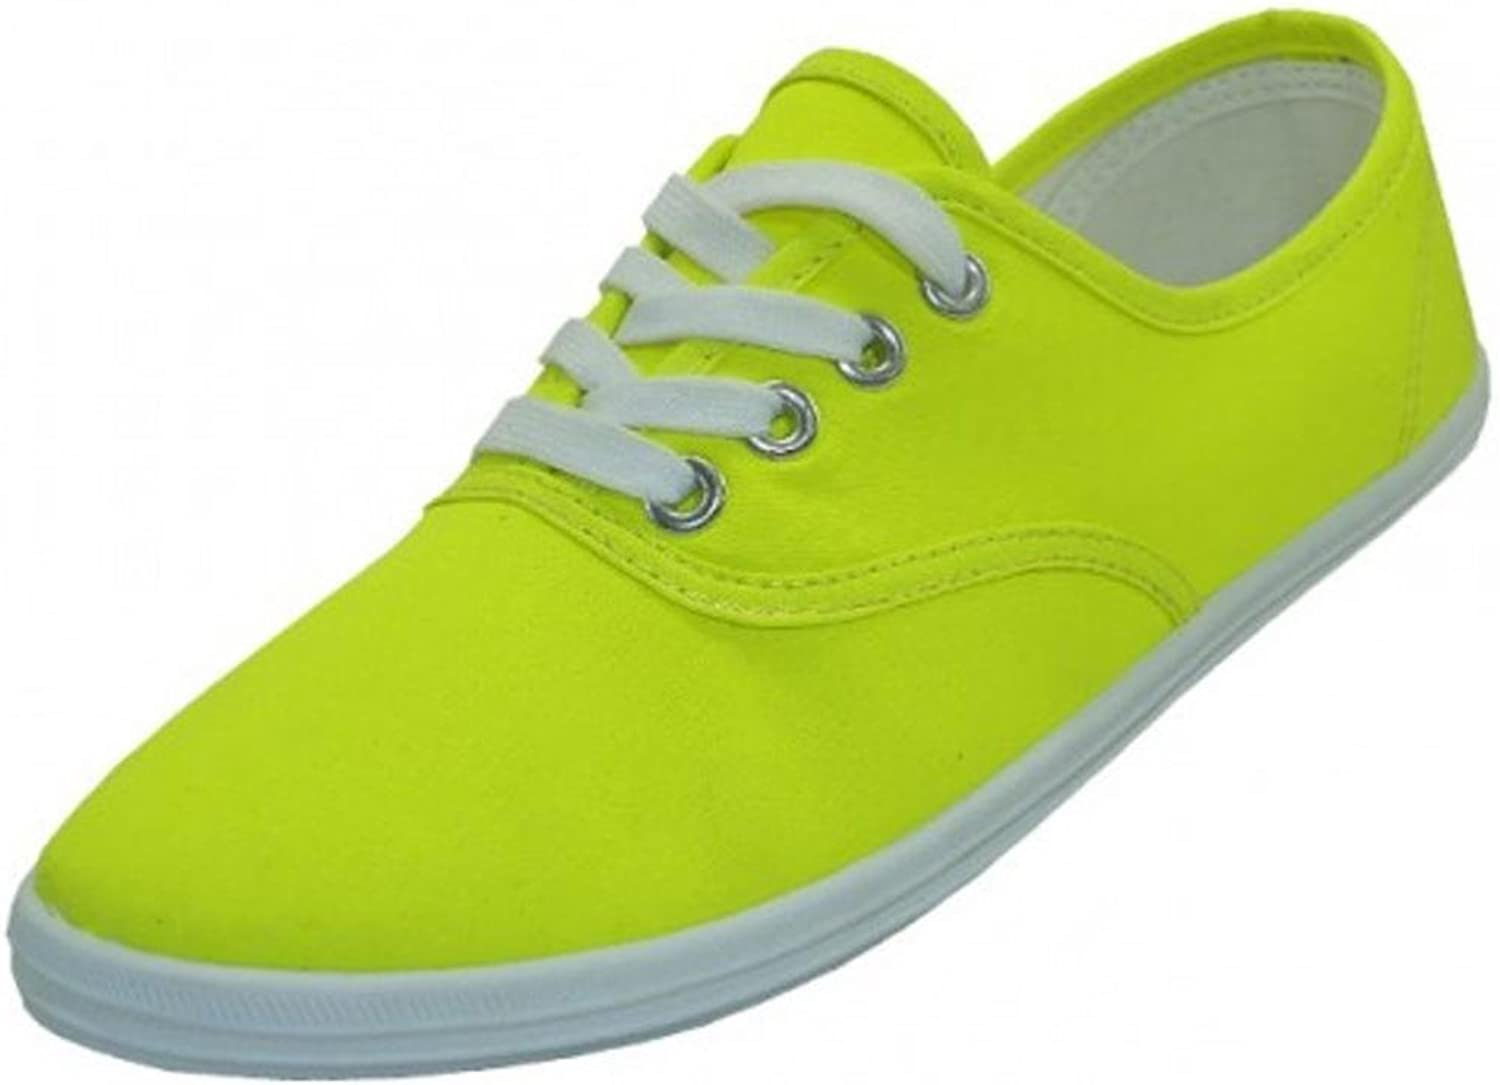 EasySteps Women's Canvas Lace Up shoes with Padded Insole, Neon Yellow, US Women's 10 B(M) US